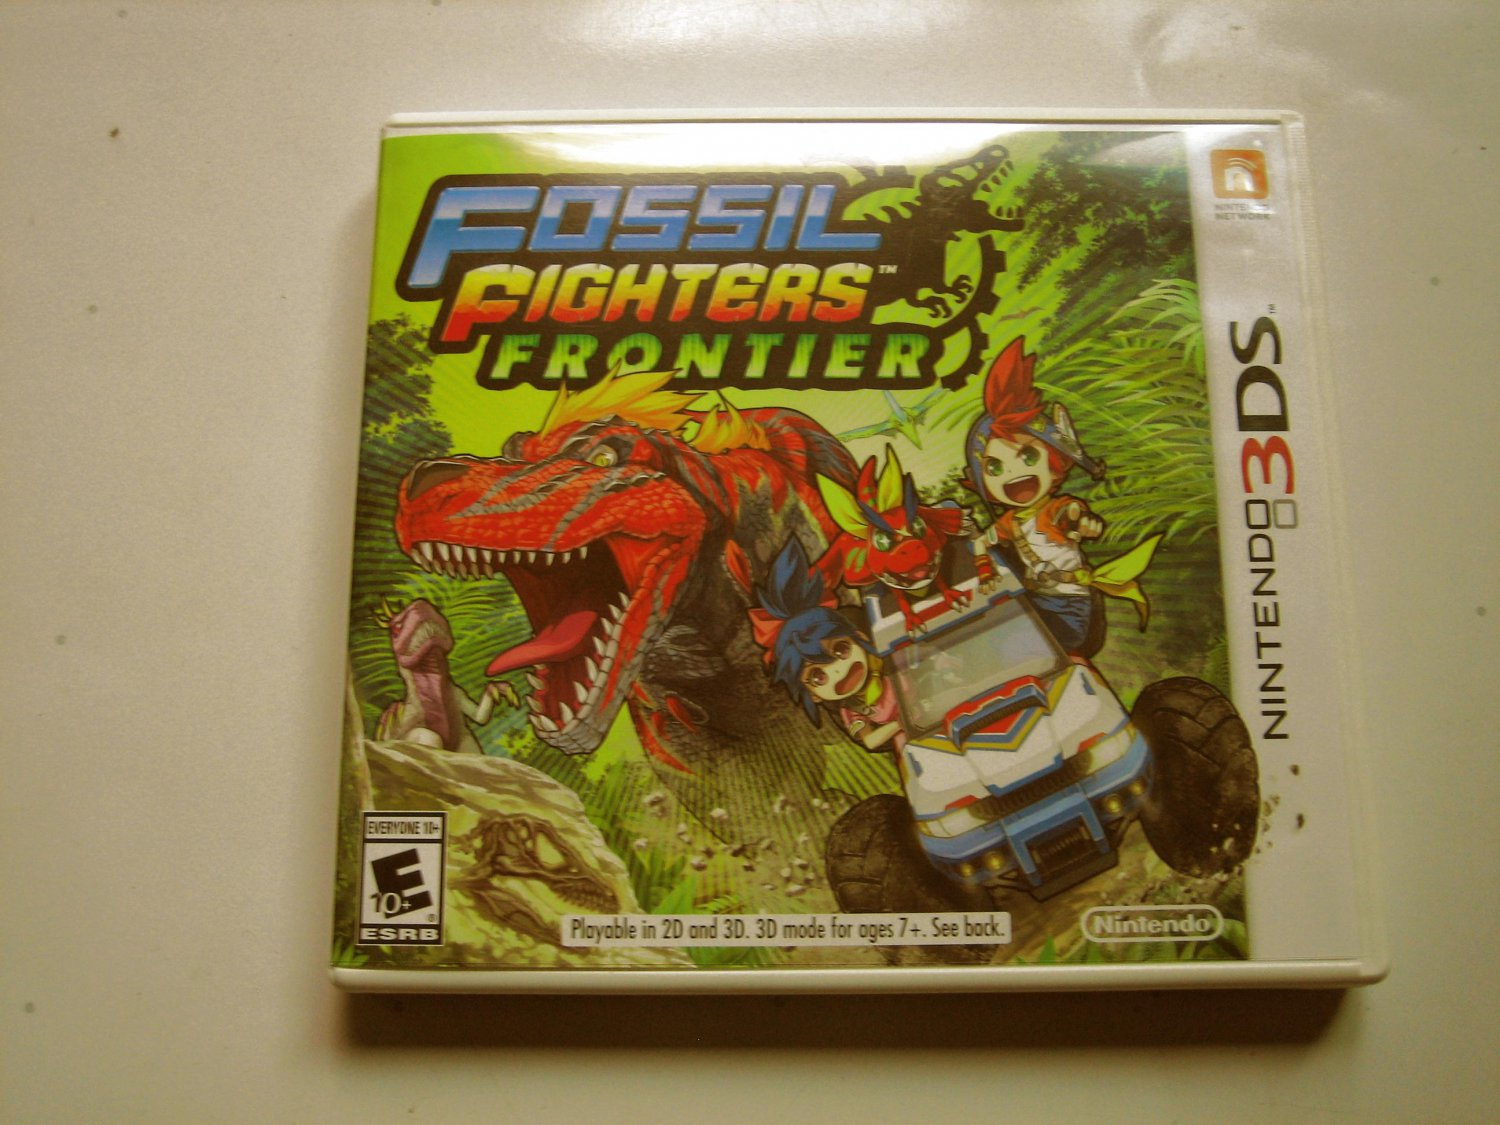 Fossil Fighters Frontier 3ds (Complete)